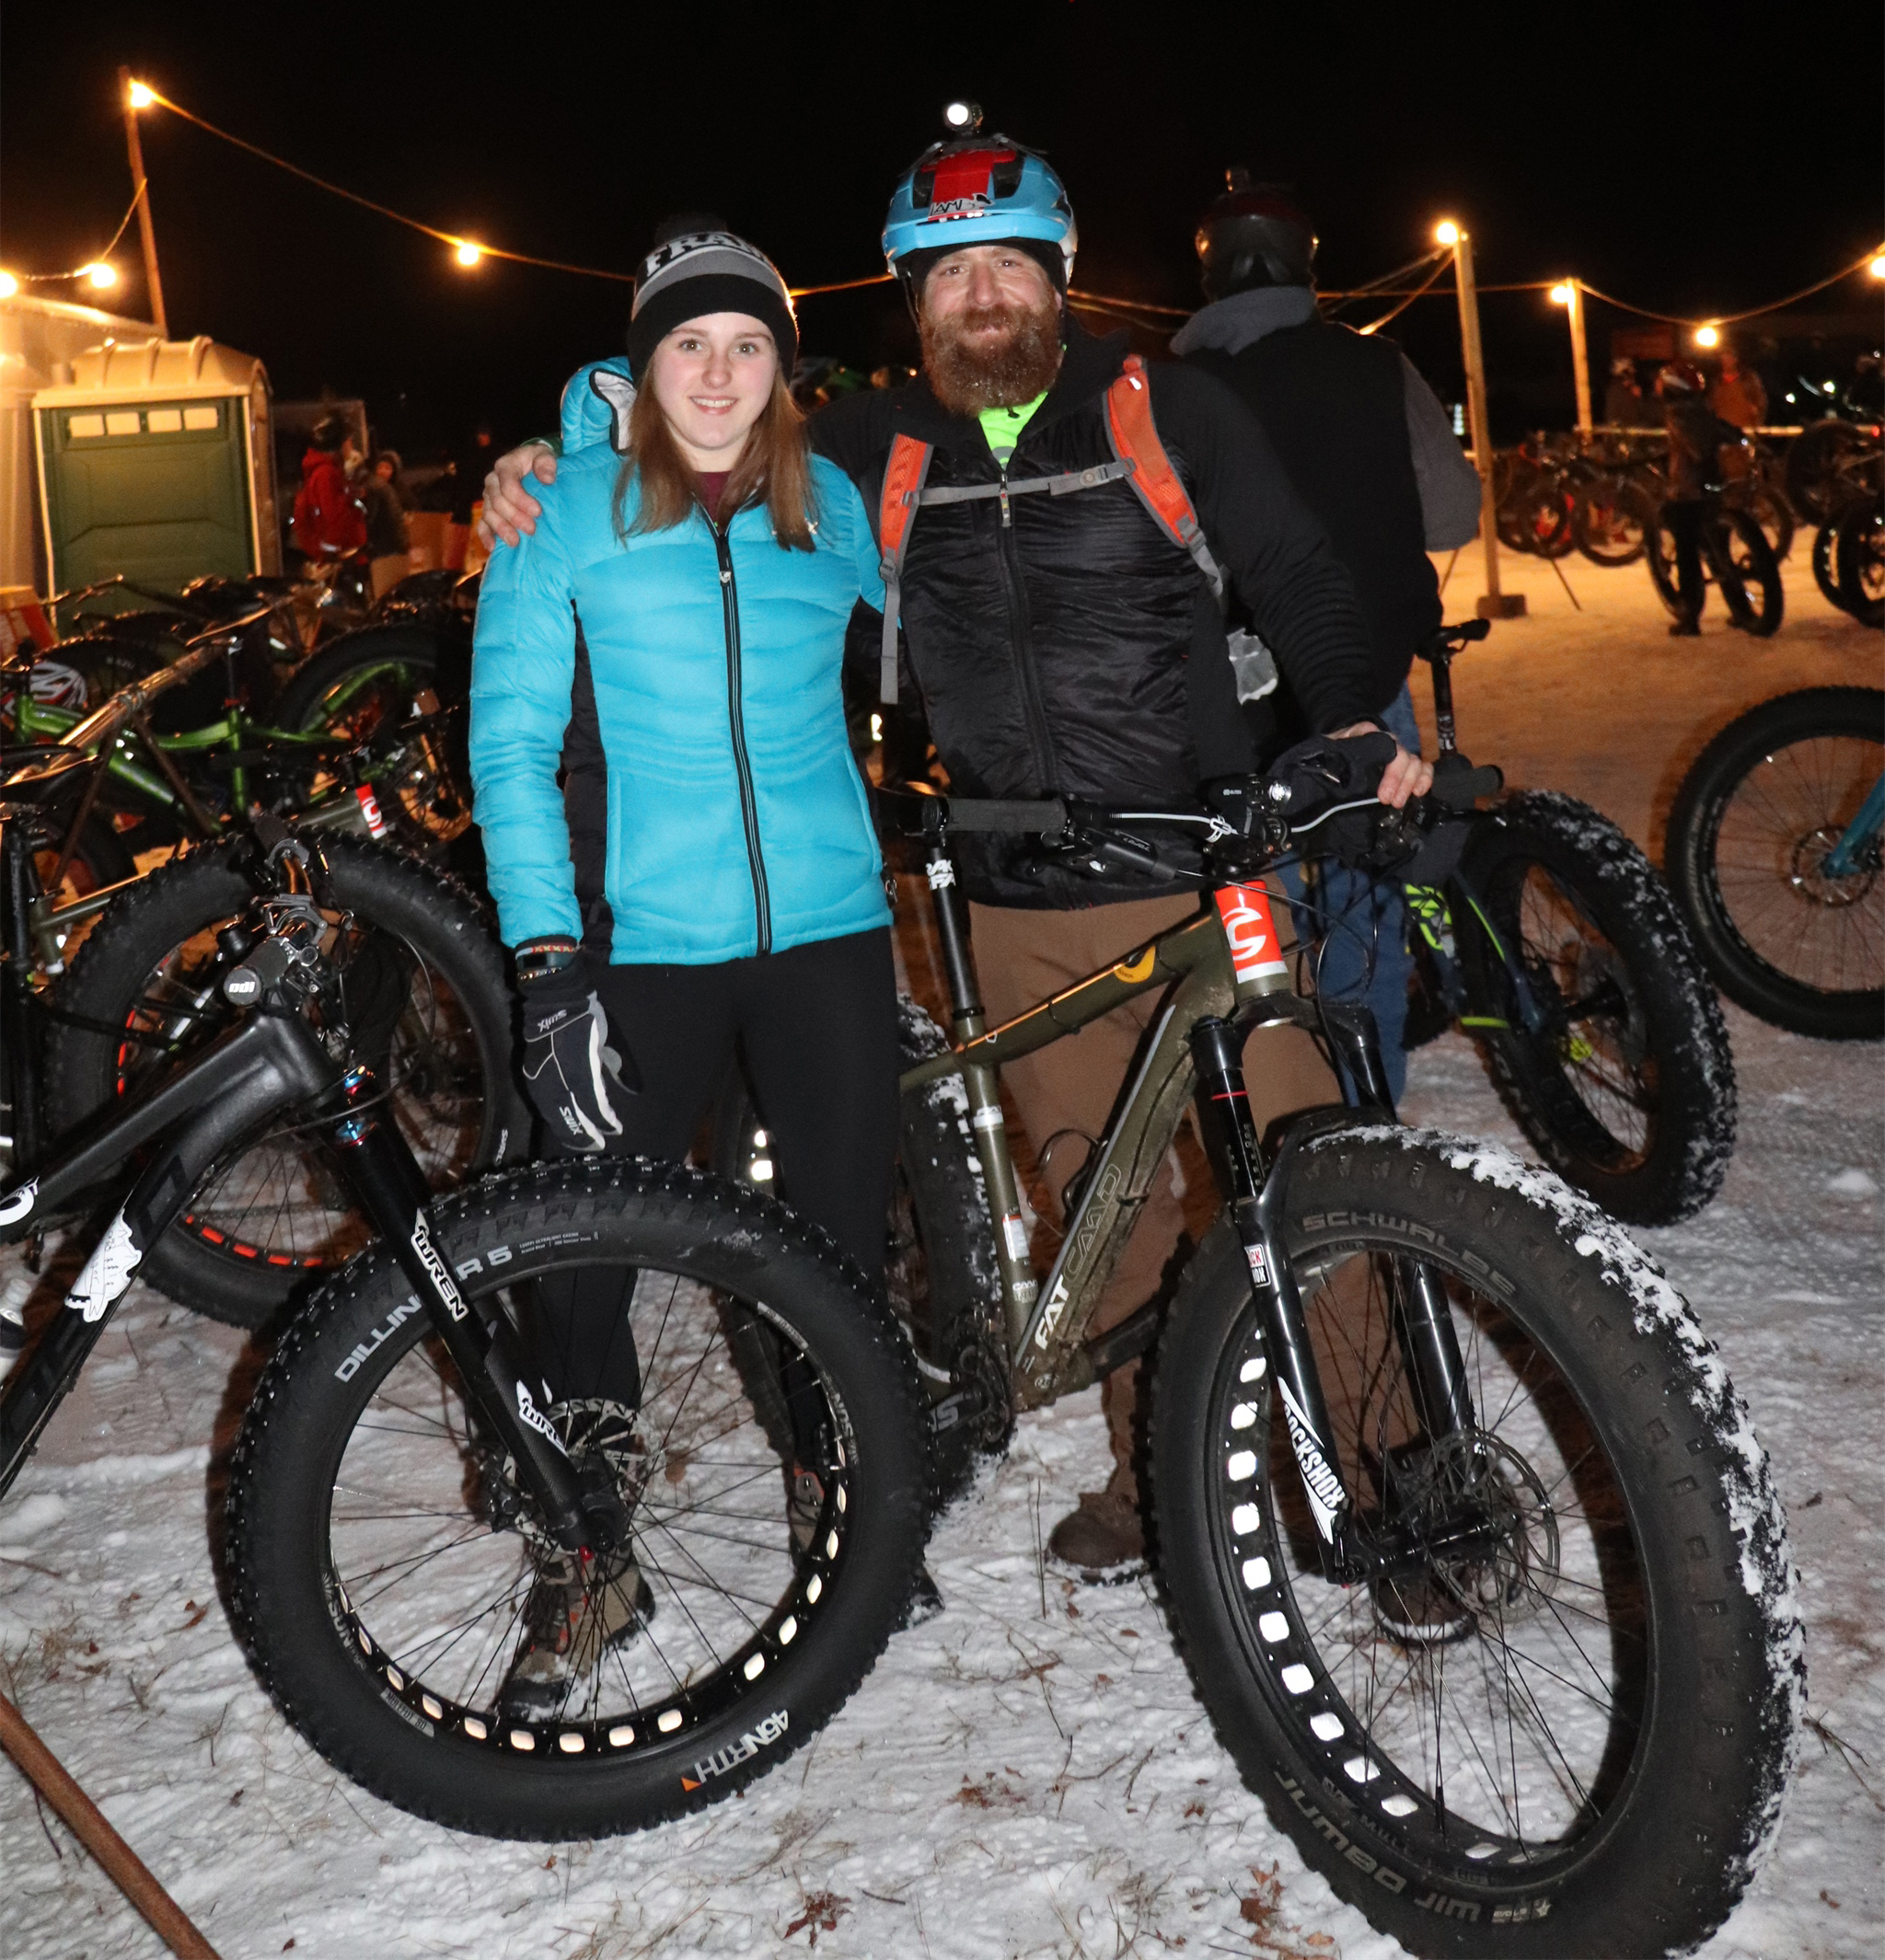 Frank and his daughter Sam pose for a photo at the Fat Bike by Candlelight event in Minocqua. Kim Johnson photo